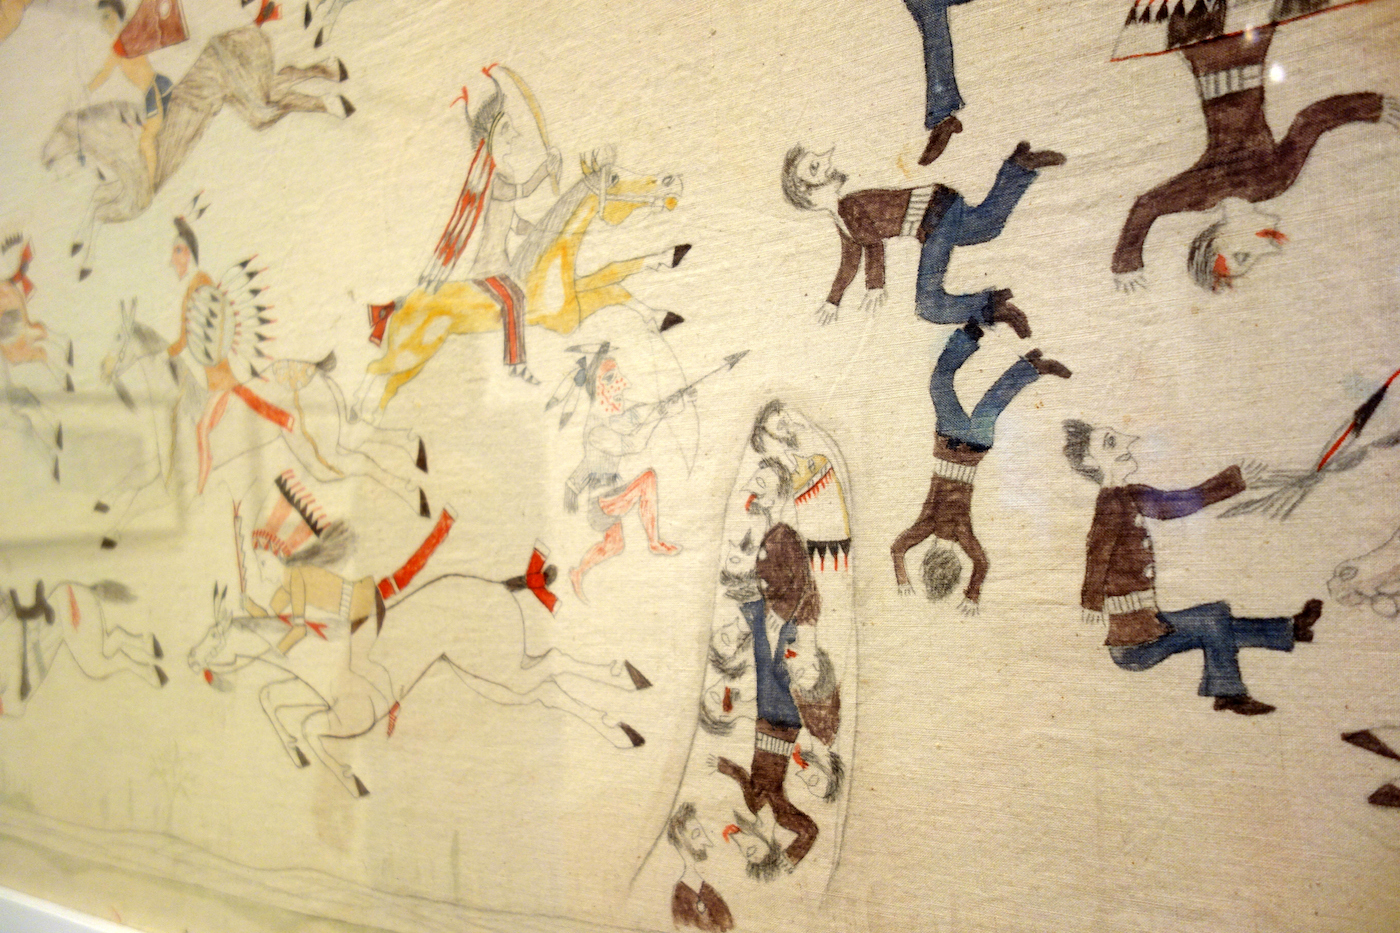 Installation view of 'First Person: Remembering Little Bighorn' (photo by the author for Hyperallergic)